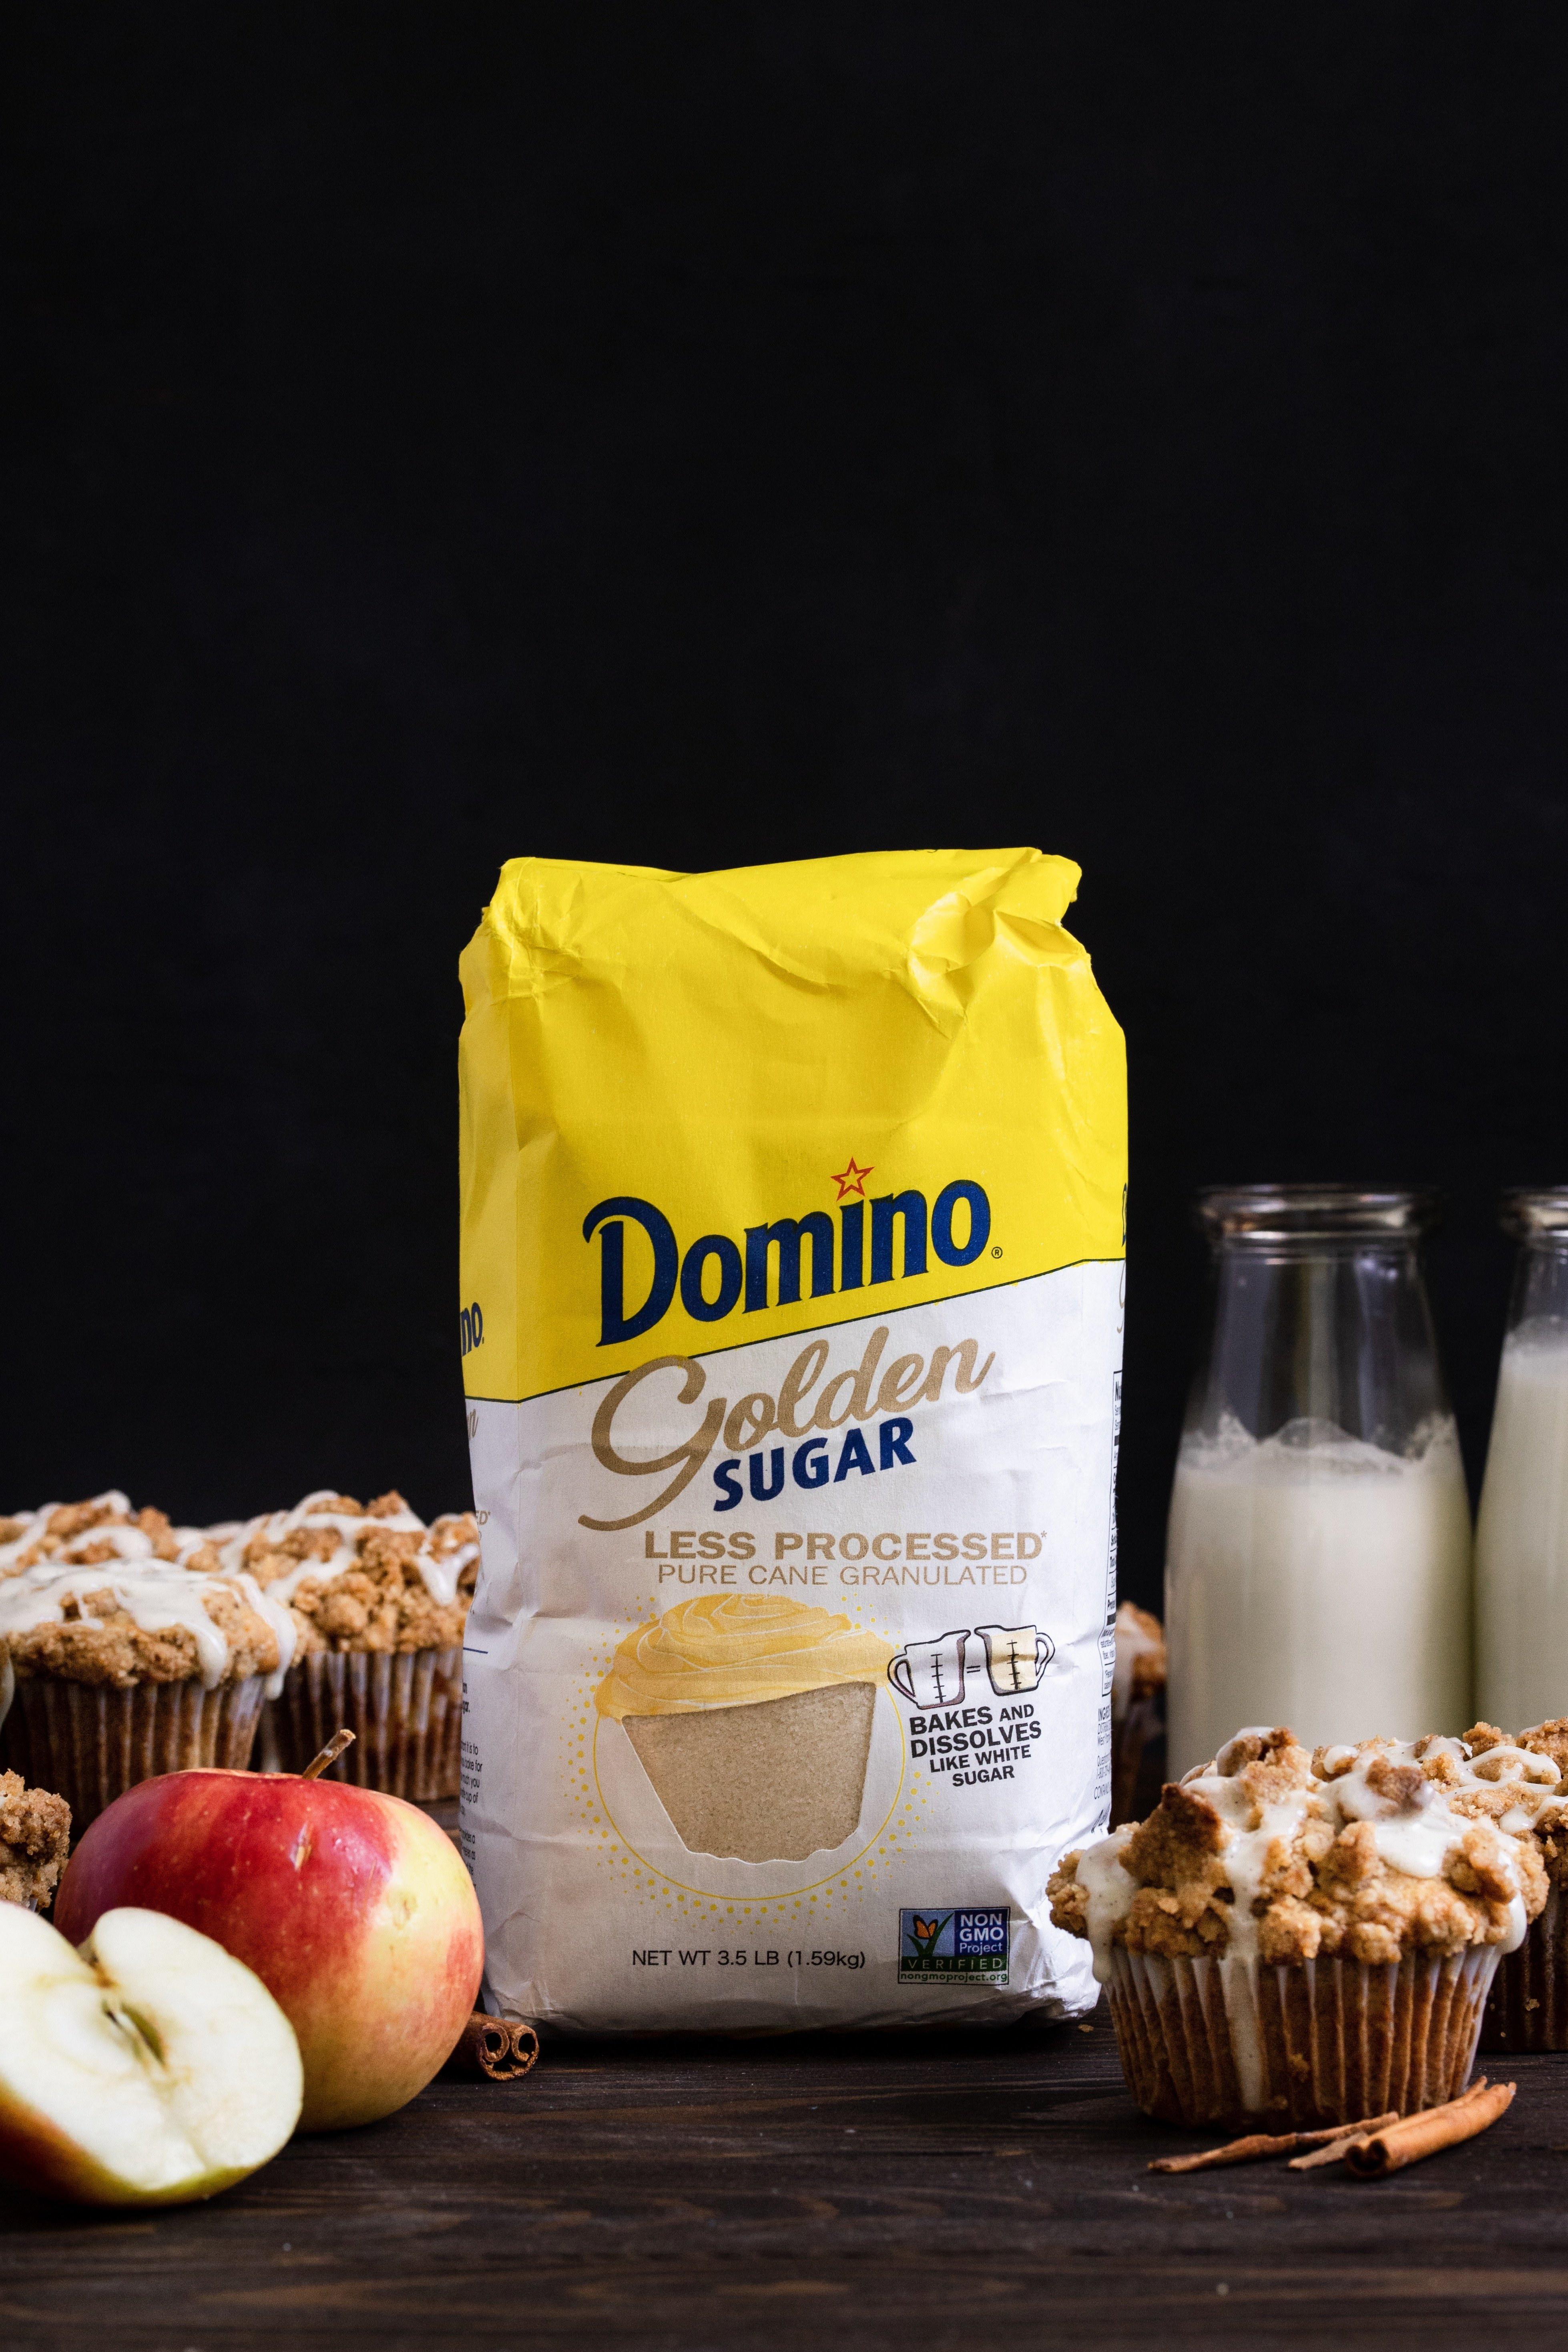 Domino Golden Sugar in front of muffins